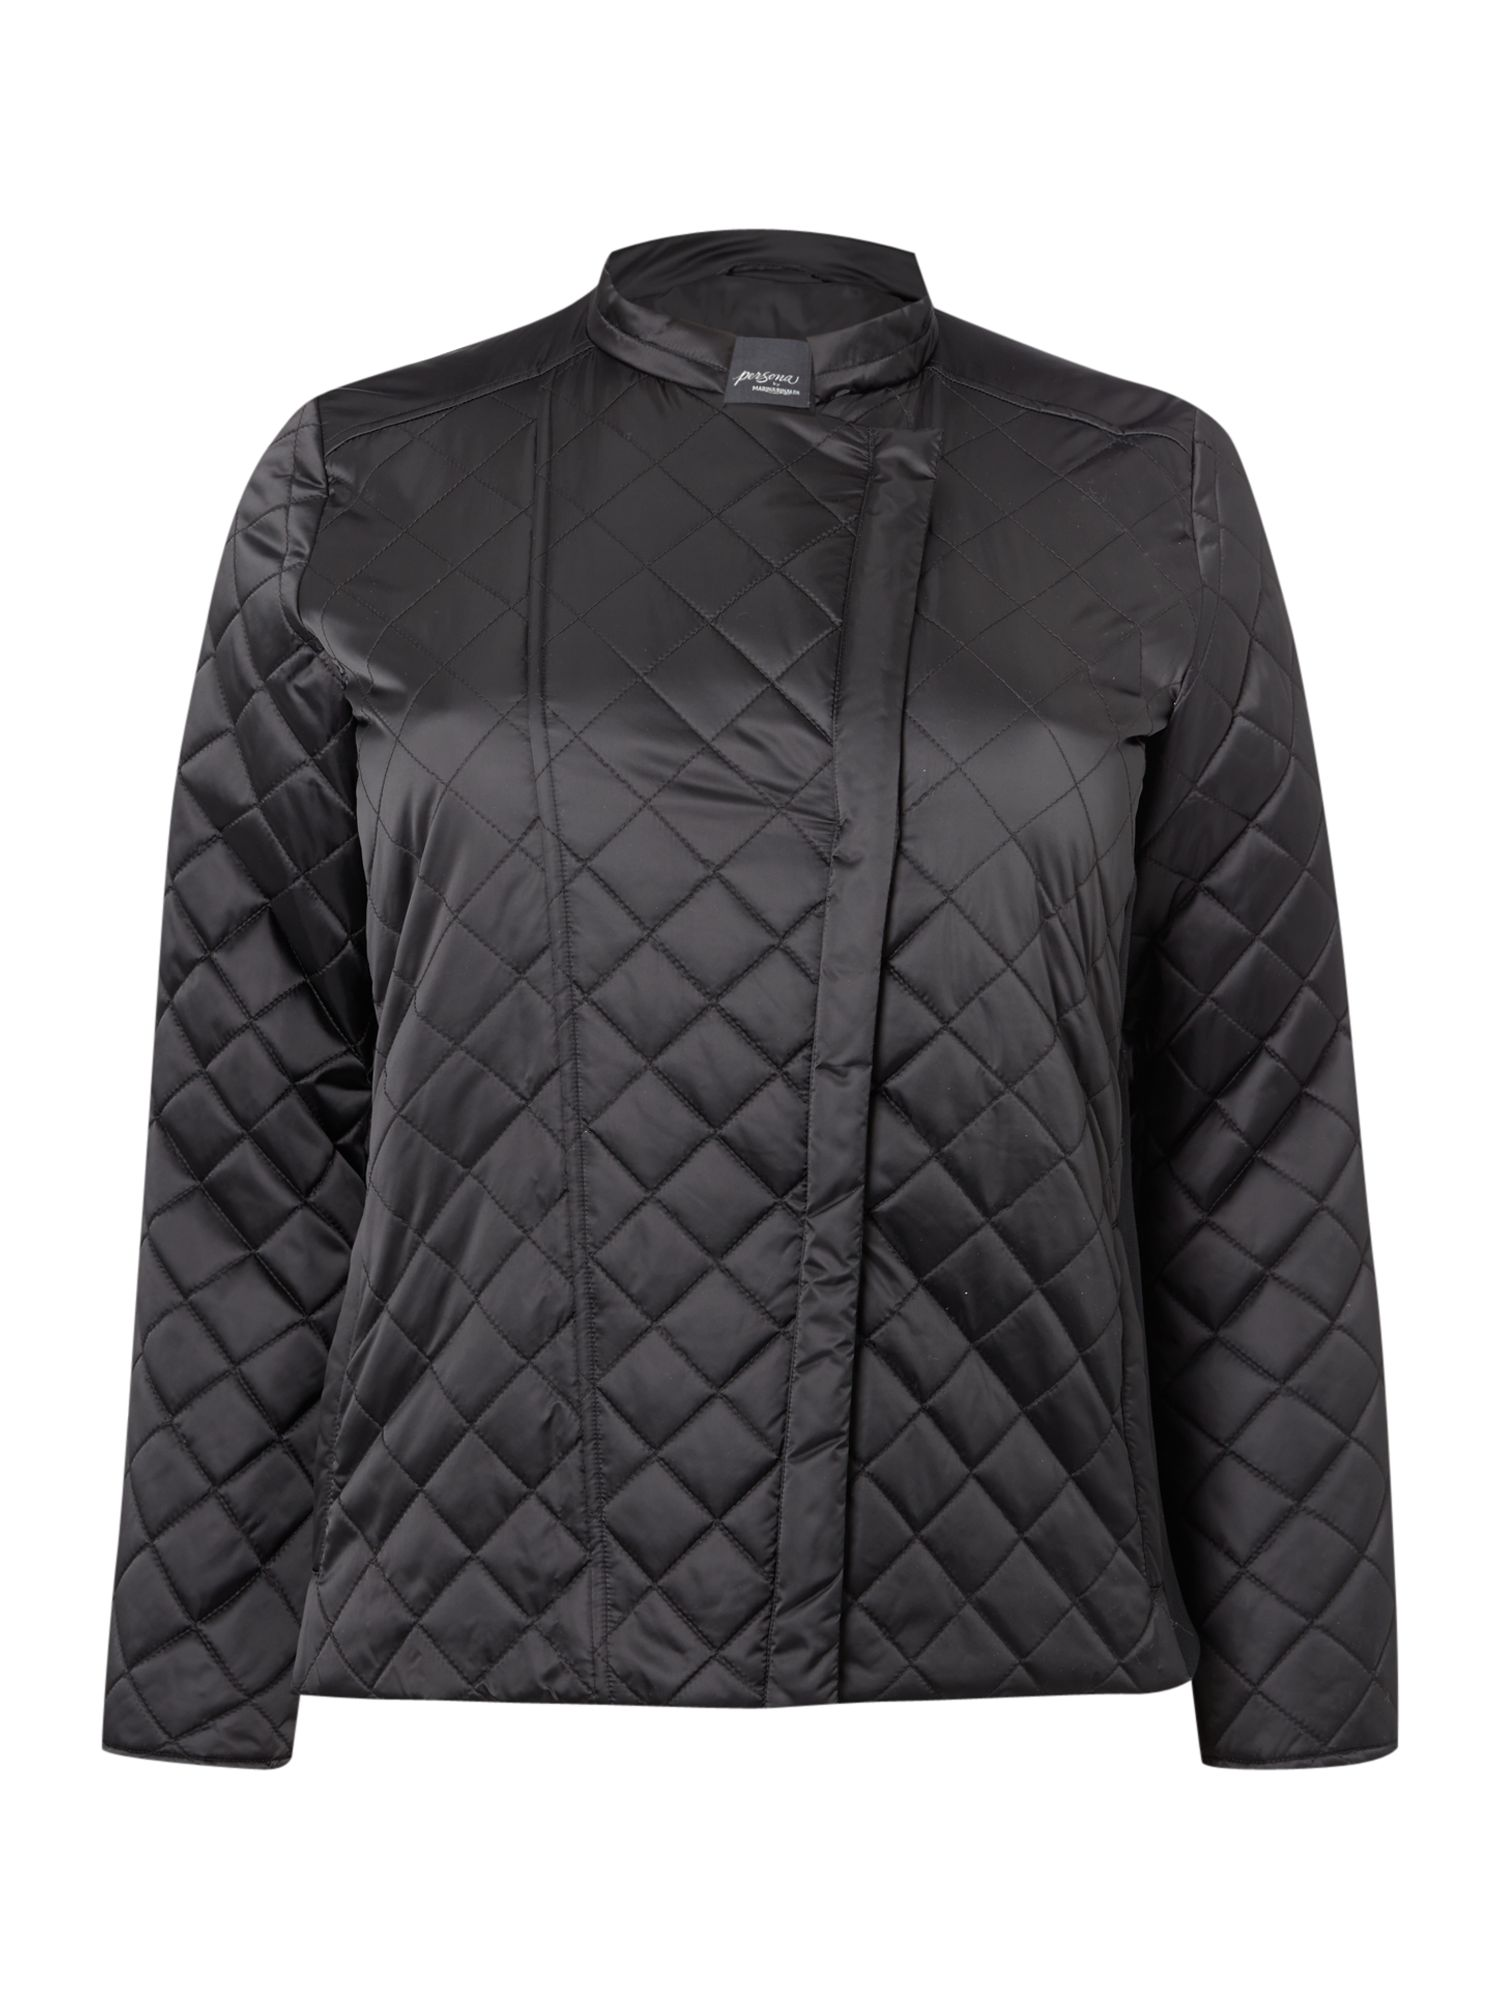 Persona Persona Tai quilted lightweight jacket, Black